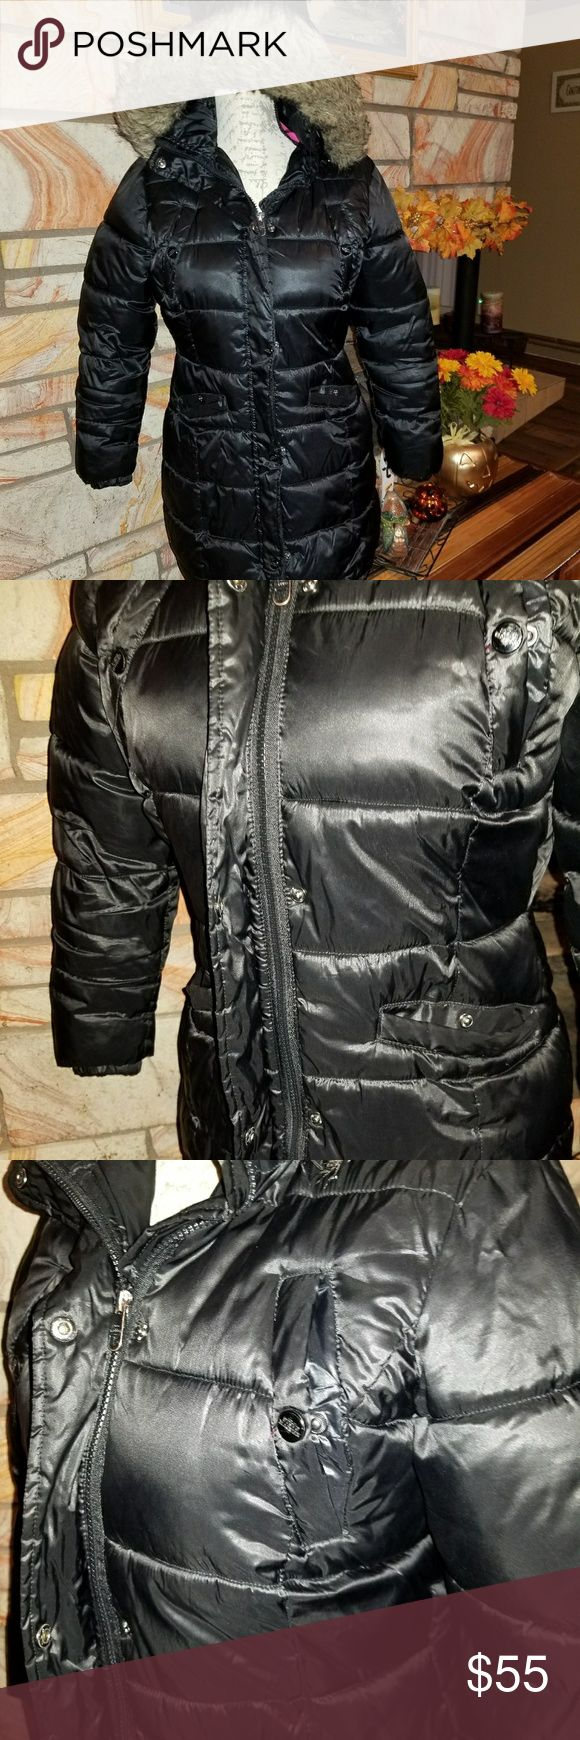 Steve Madden Womens puffer Coat Beautiful puffer coat. Black with faux fur trimmed hood and warm pink lining. Hood can be worn or easily removed using the zipper. Coat zips all the way up the front and can be buttoned as well to keep that pesky cold out. This coat is in like new condition. Steve Madden Jackets & Coats Puffers